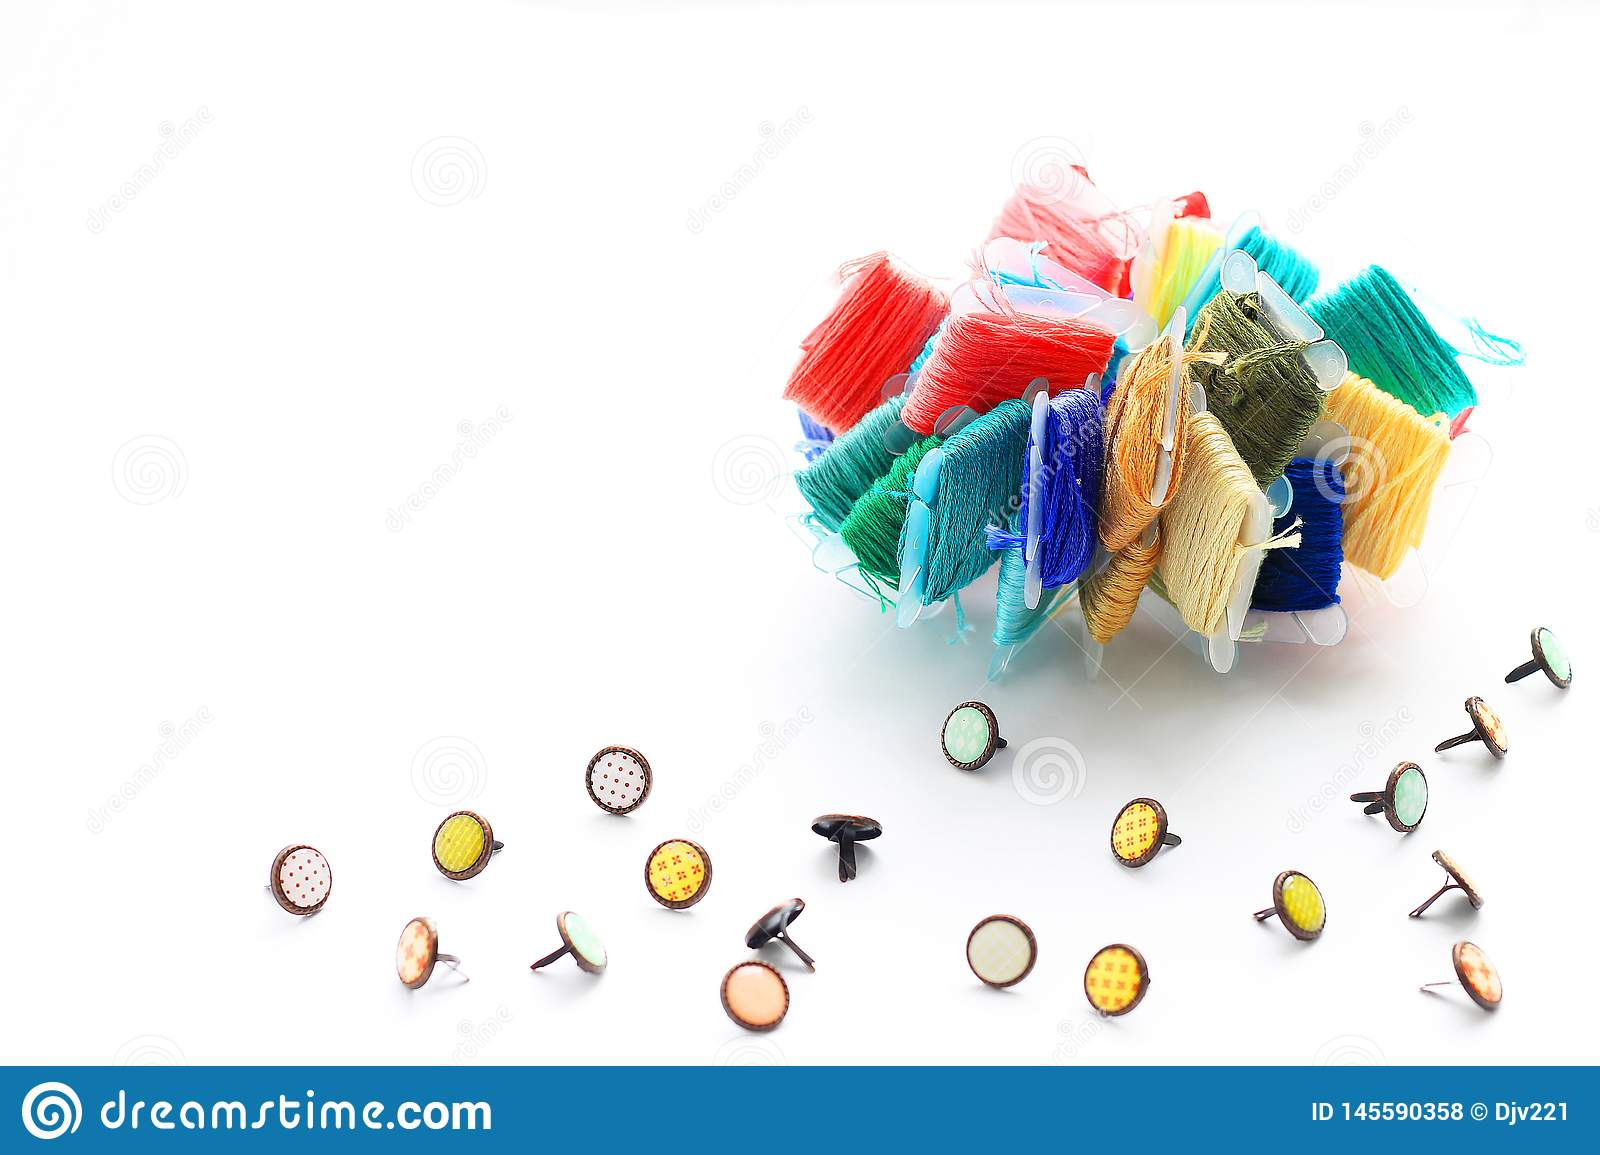 Samples of embroidery threads and buttons for clothes